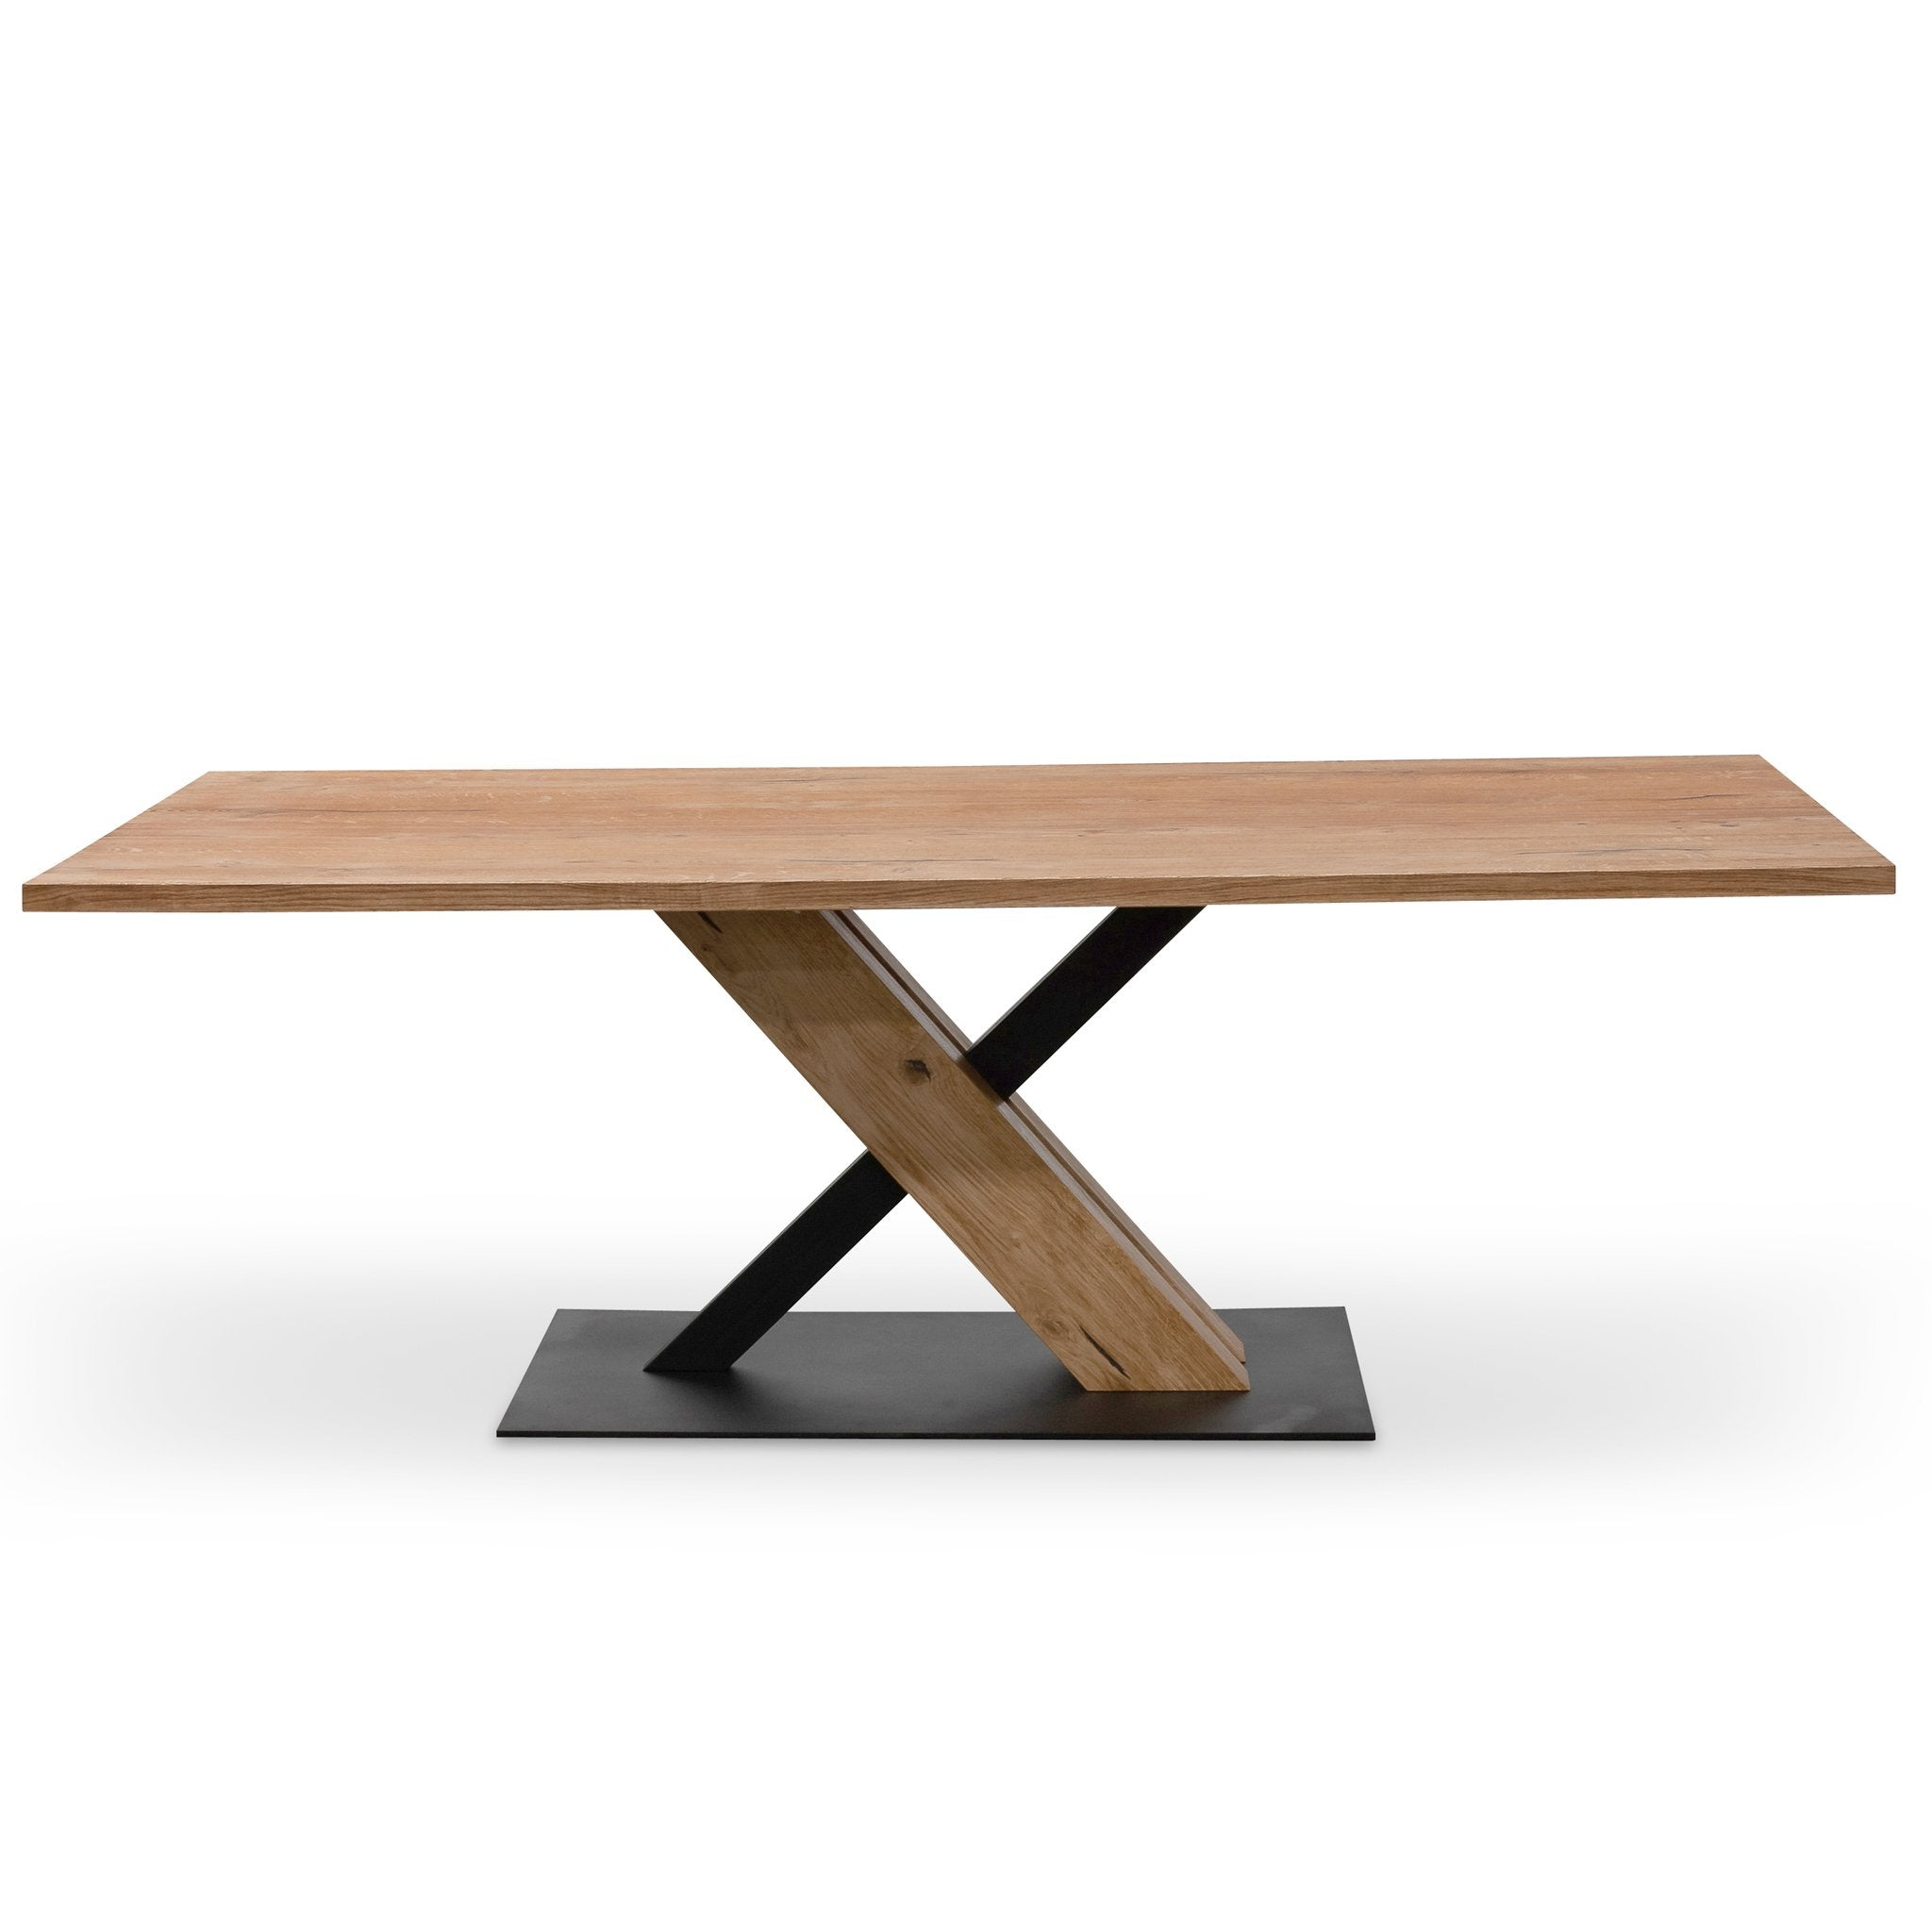 Picture of: Elma 2 2m Dining Table Rustic Oak Wooden Metal Base Interior Secrets